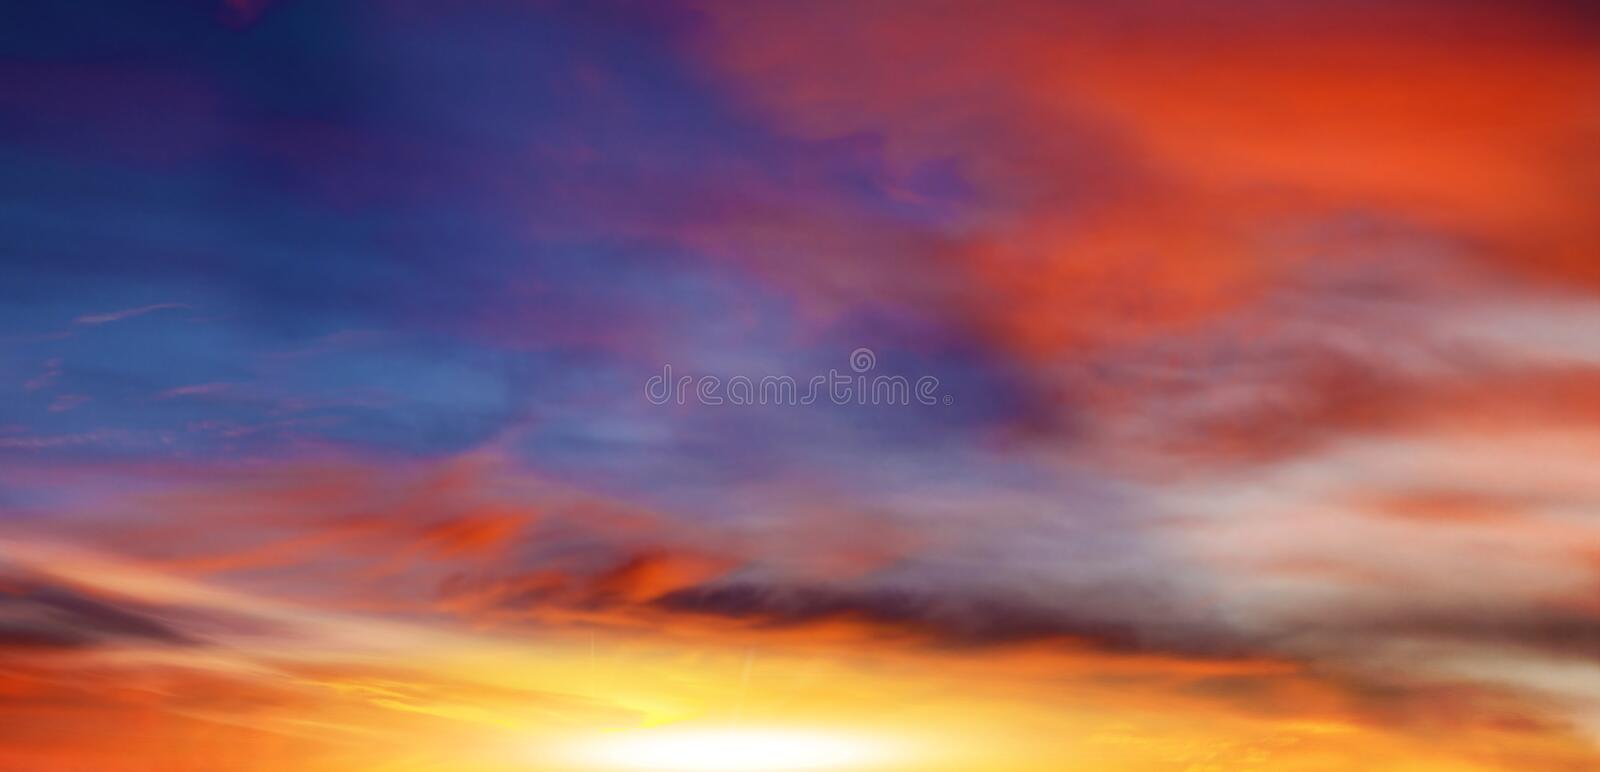 Light from sky . Religion background . Dramatic nature background . Sunset or sunrise with clouds, light rays and other atmospheric effect . Light from sky stock photos